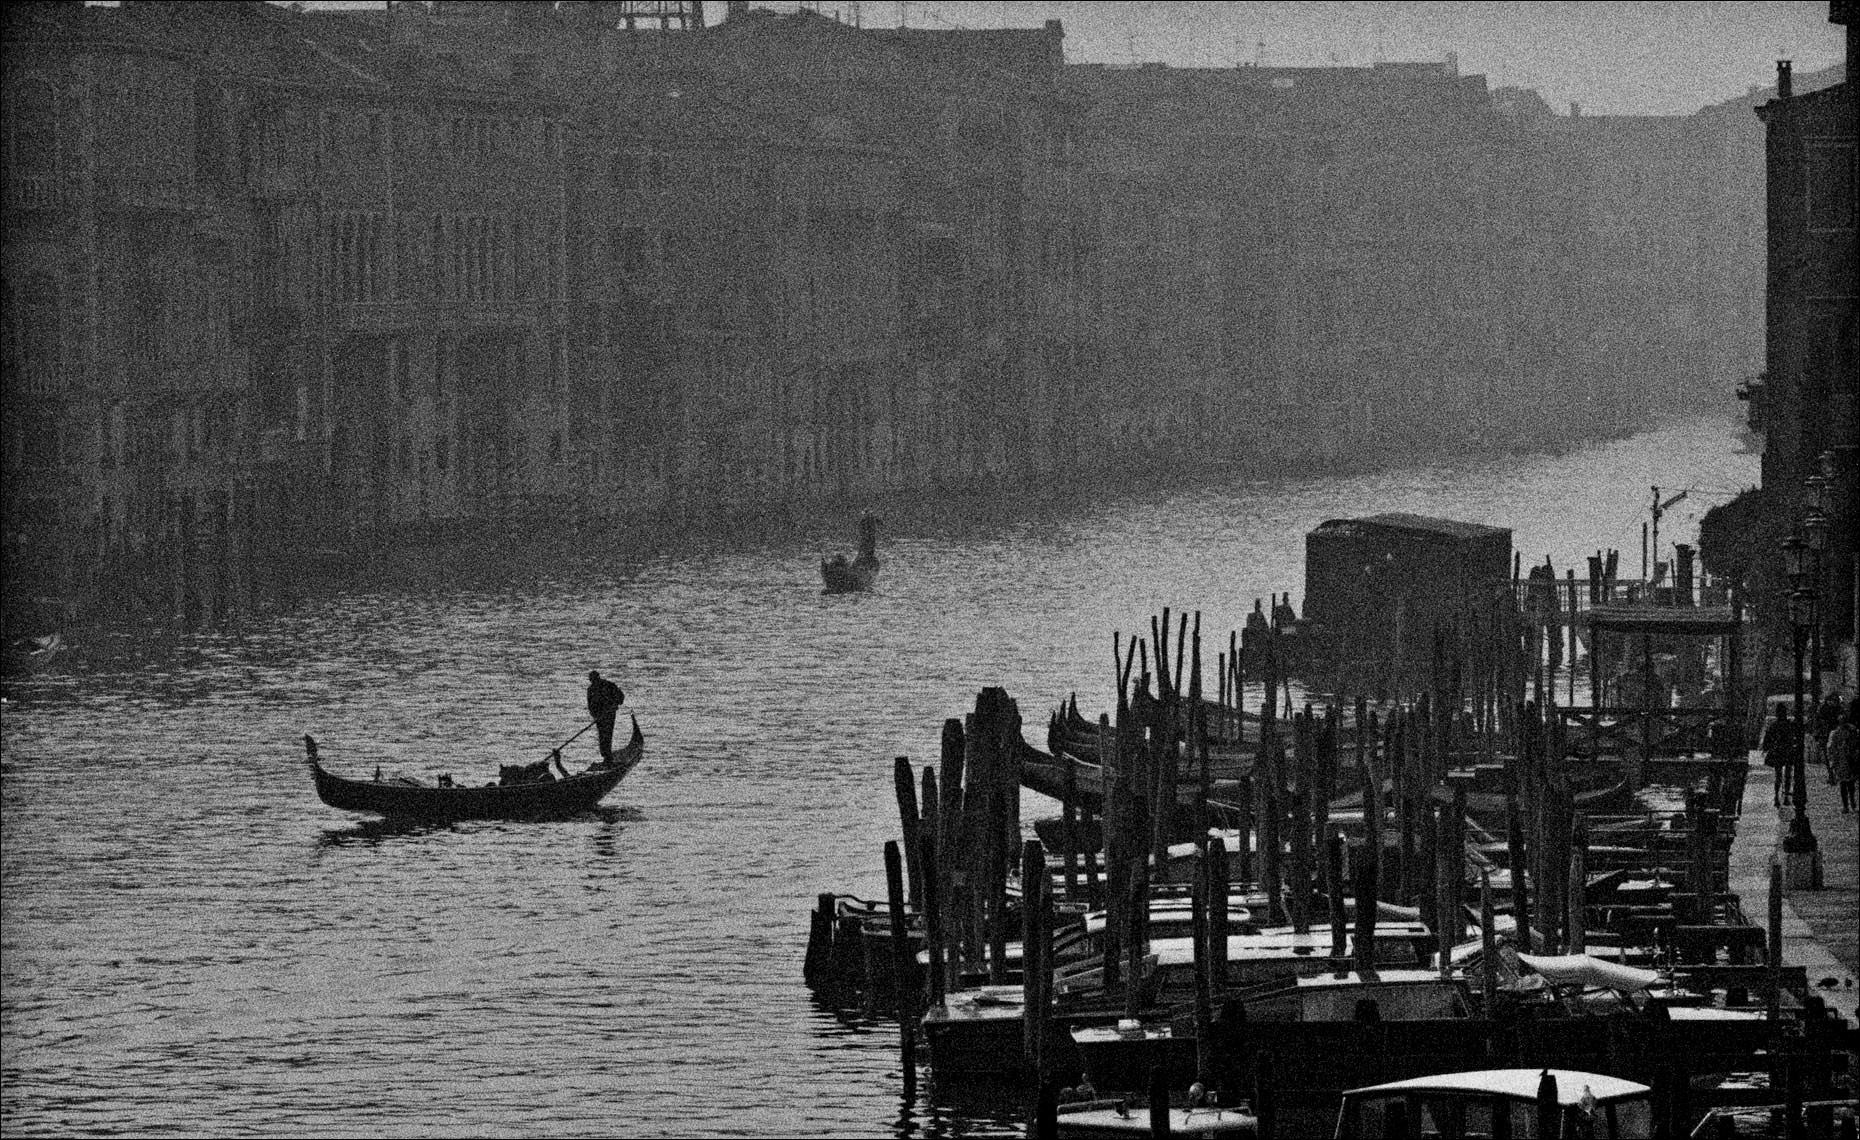 gondola-from-rialto grand-canal venice ©Paul Hampton Photographer Glasgow